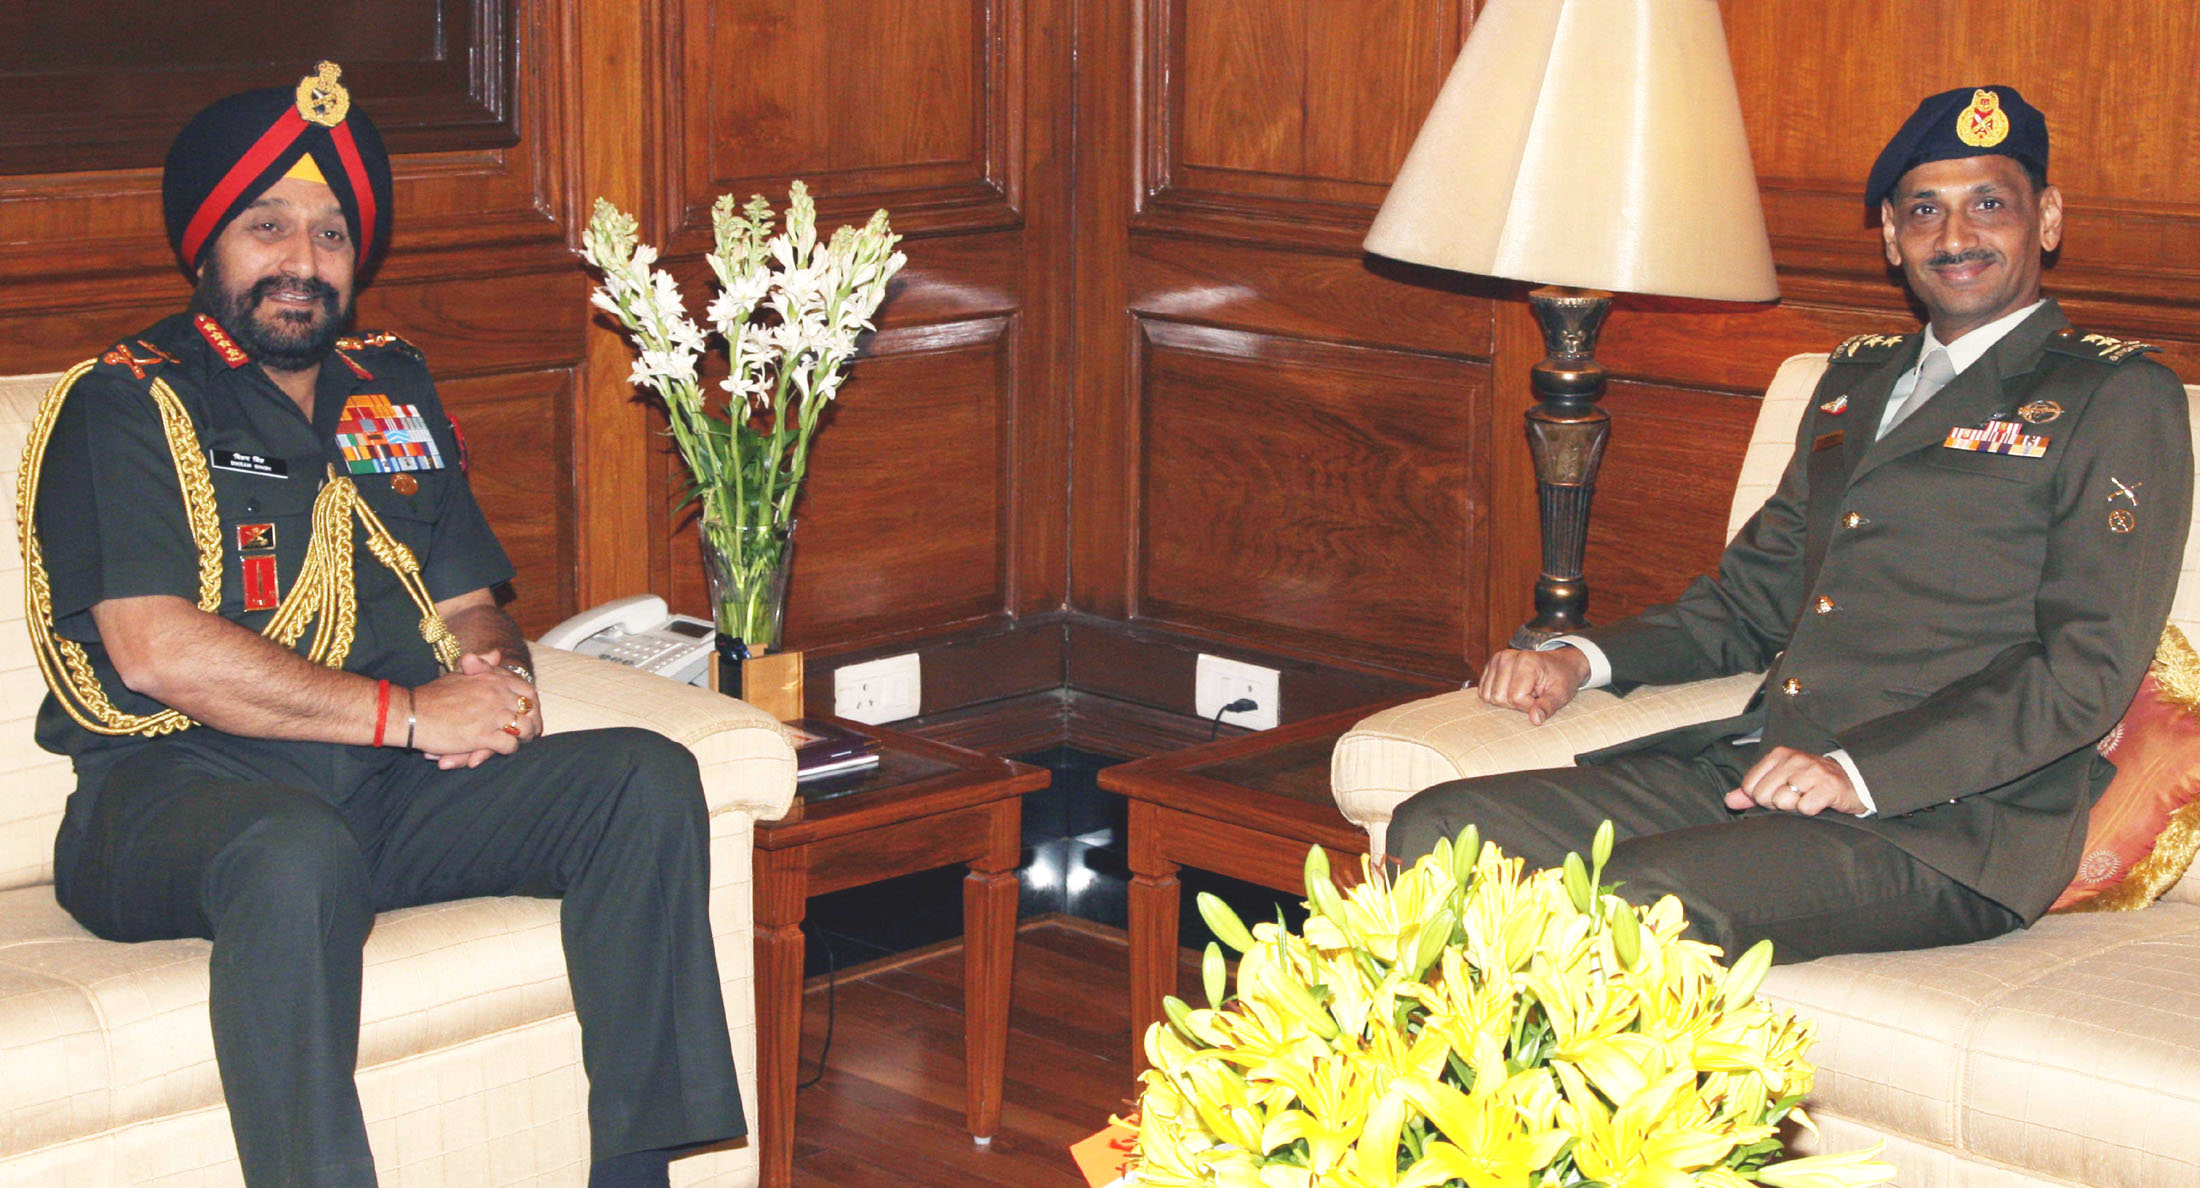 The Chief of the Singapore Army, Maj. Ravinder Singh meeting the Chief of Army Staff, General Bikram Singh, in New Delhi on March 19, 2013. The bilateral agreement between armies was renewed in later June.